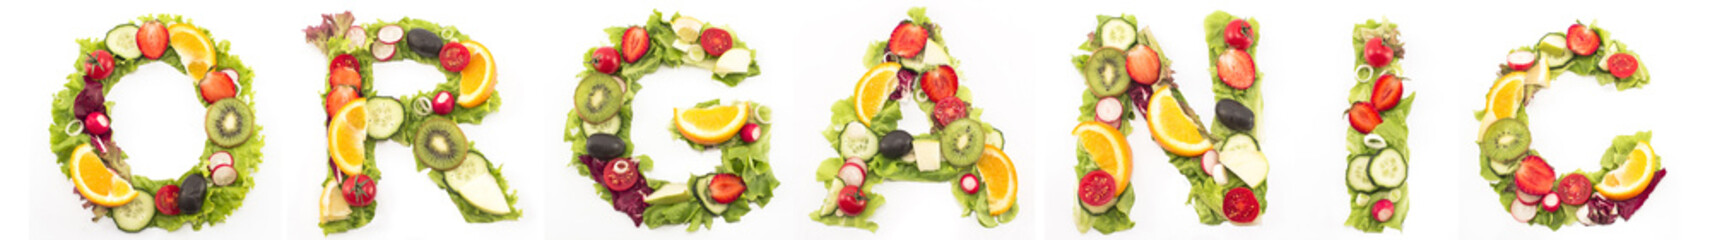 Word organic made of salad and fruits